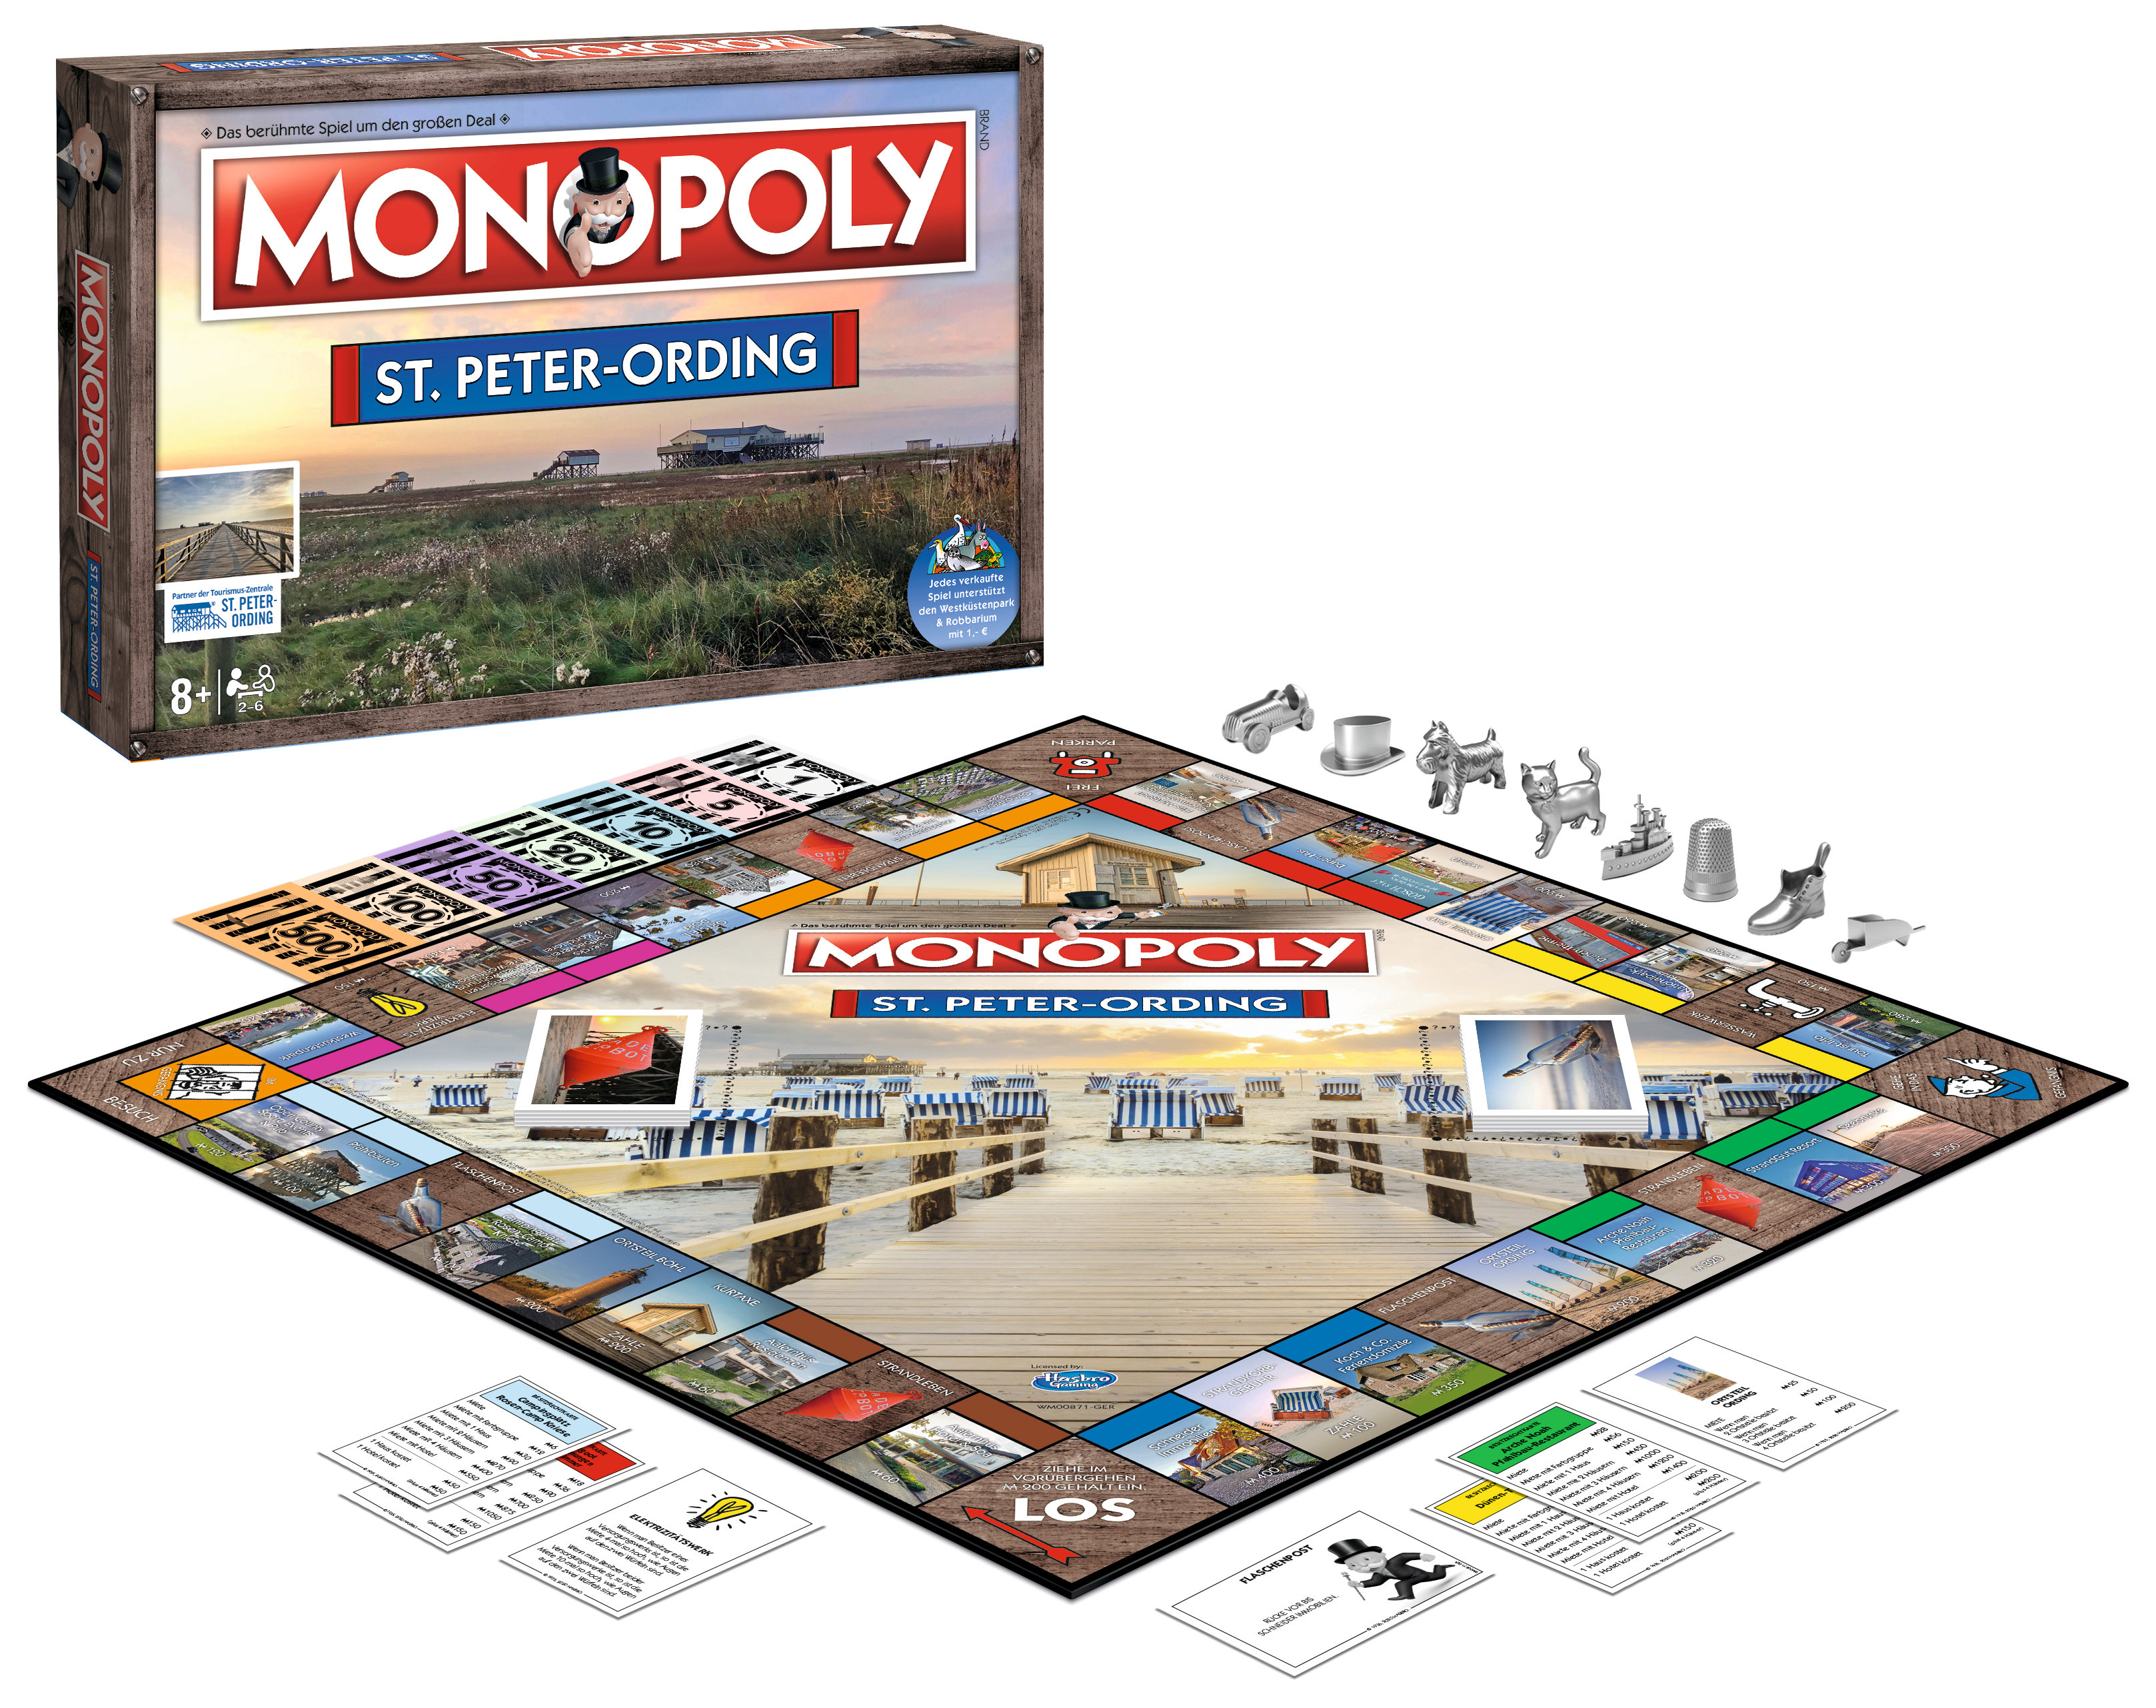 Monopoly St. Peter-Ording